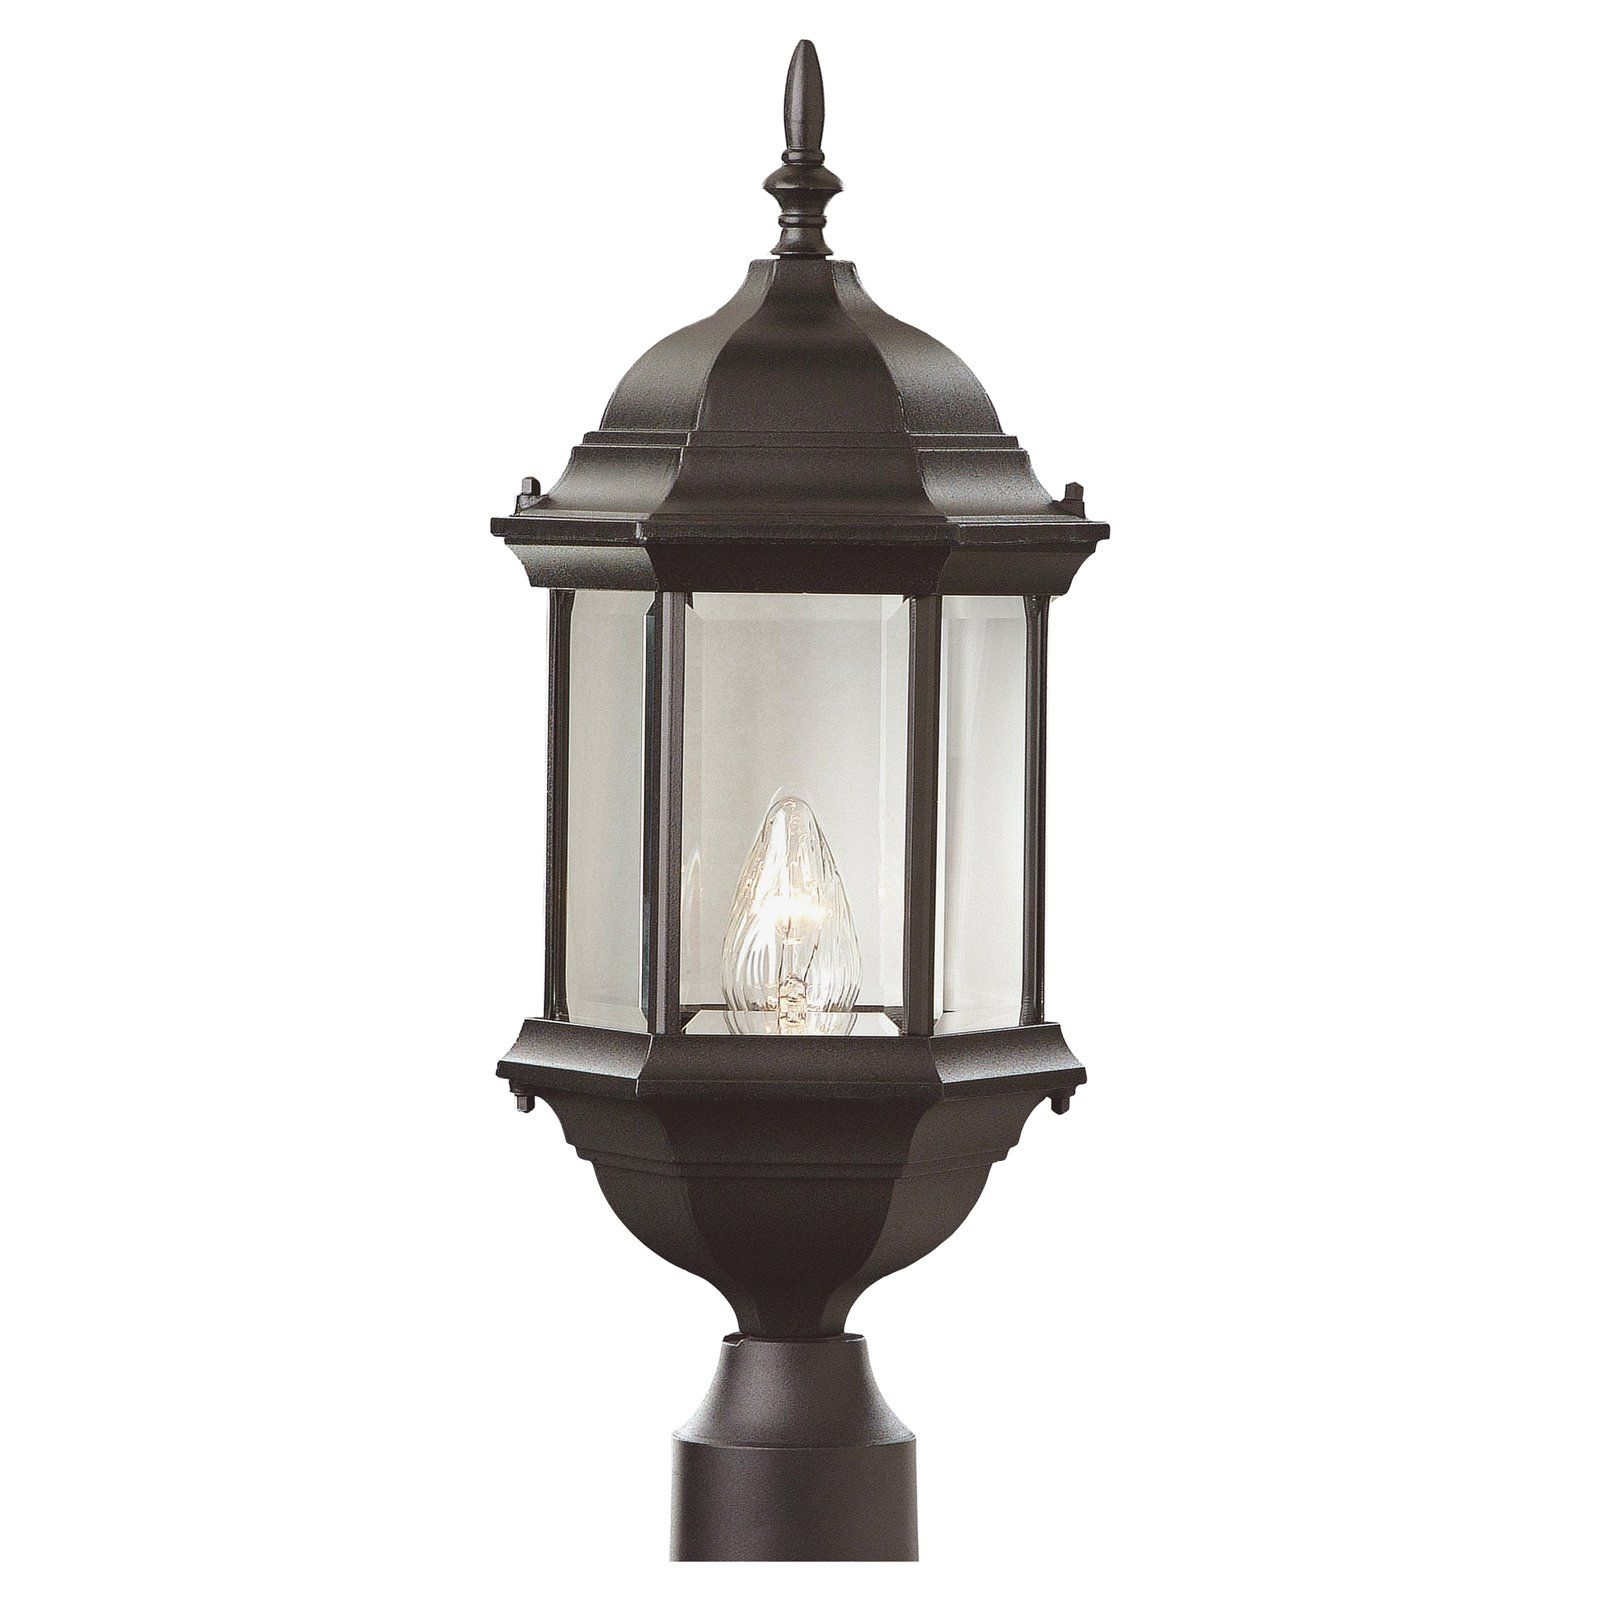 Trans Globe Alicante 4352 Outdoor Post Top Lantern 23h In With Images Outdoor Post Lights Trans Globe Lighting Lantern Head